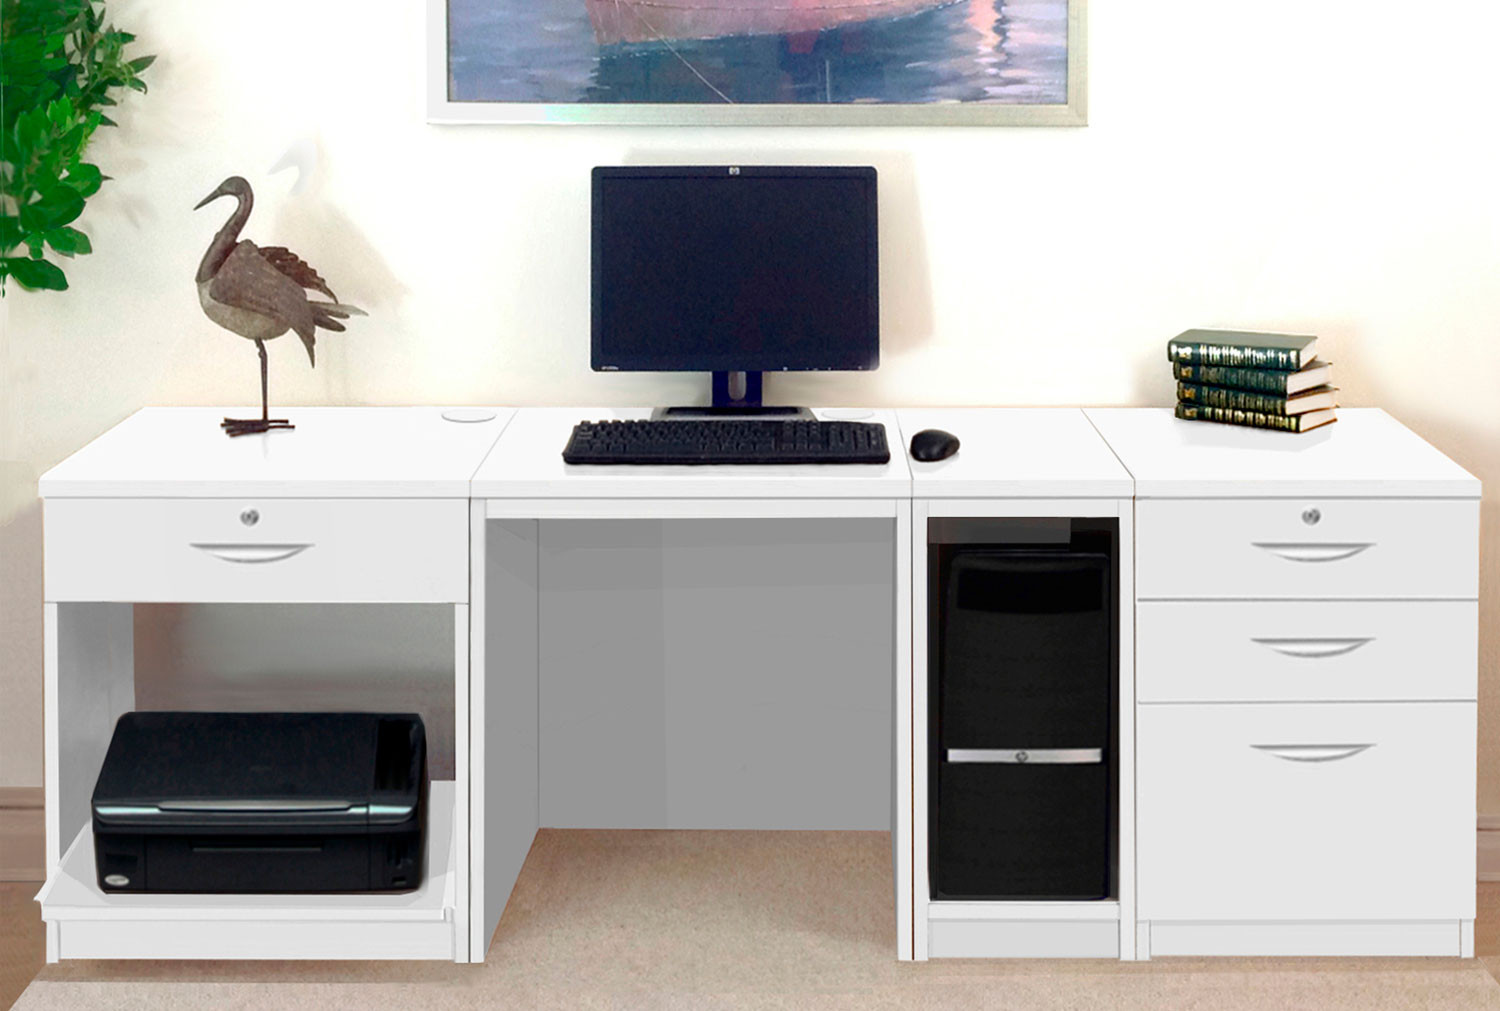 Small Office Desk Set With 1+3 Drawers, Printer Shelf & CPU Unit (White)